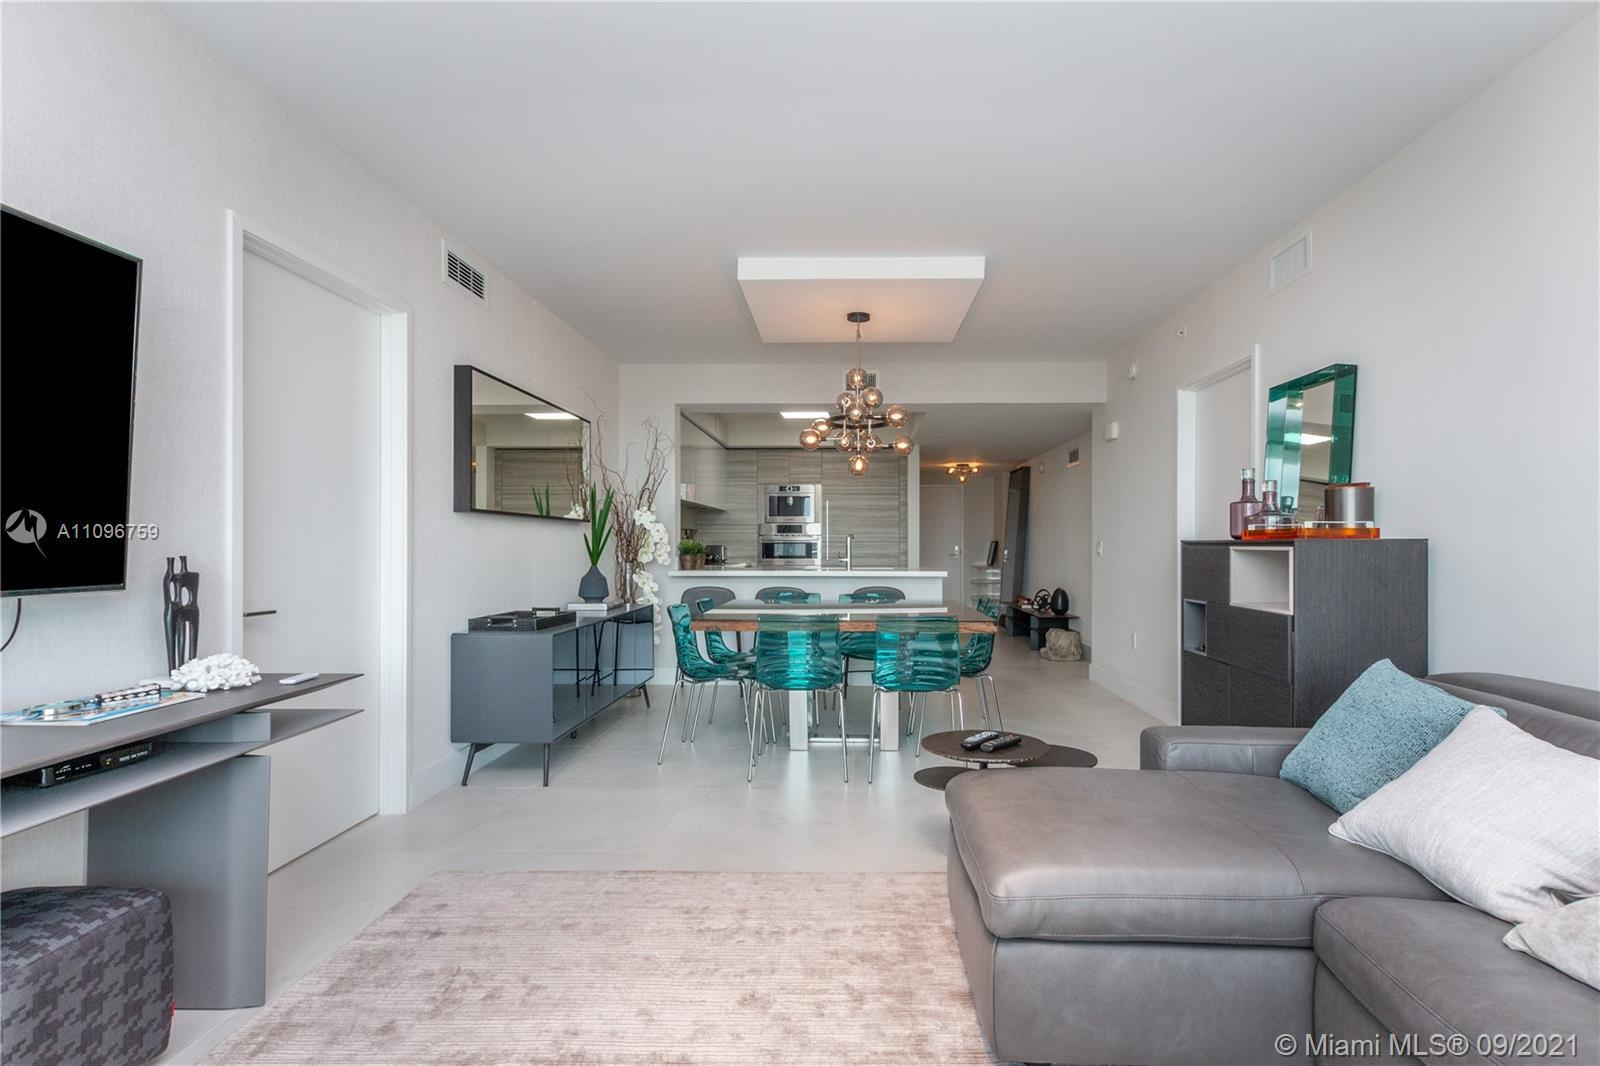 Gorgeous 3 bed 3 bath unit overlooking haulover park and sunny isles. 5-10 minutes away from the mos